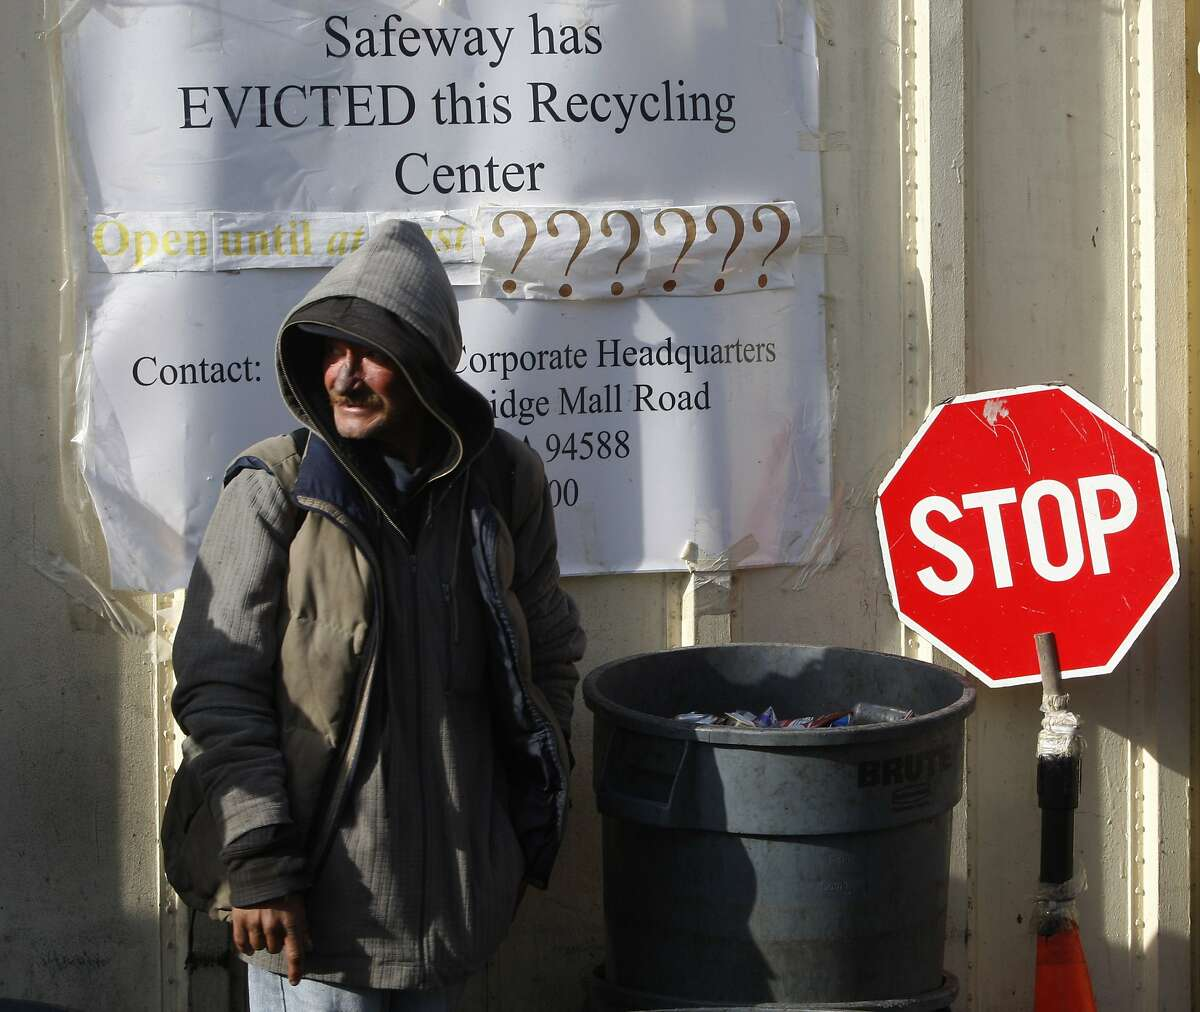 Dave (declined full name, but gave permission to use) has been recycling since last year at the recycling center next to the Market Street Safeway in San Francisco, Calif., on Friday, January 10, 2014. A law suit was filed and protests have recently been held to keep the long time recycling center open.